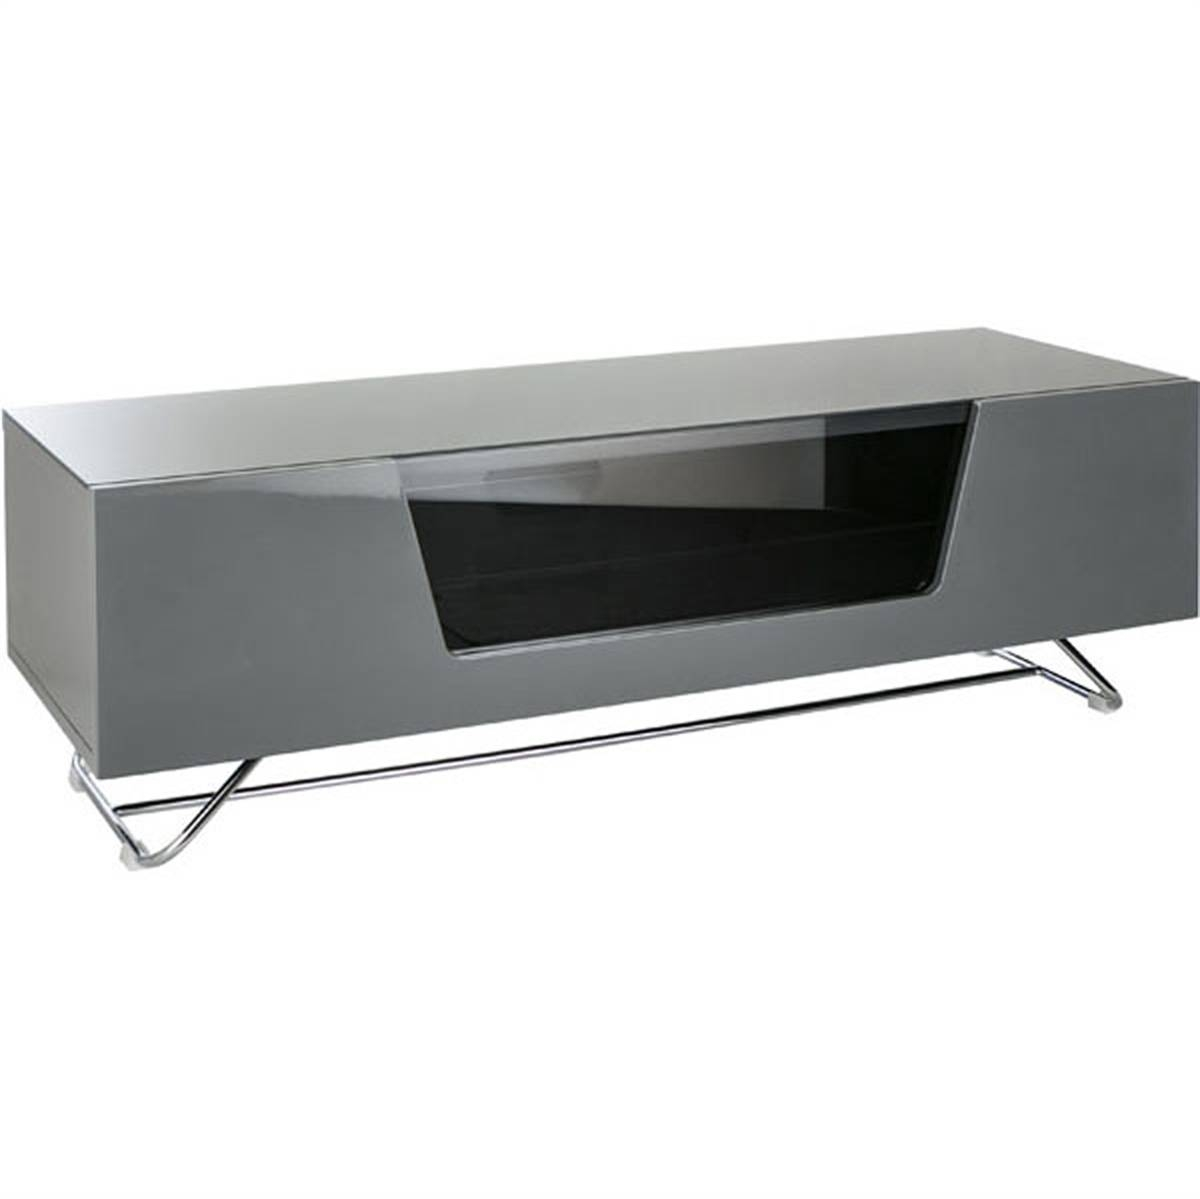 Alphason New Alpha Chromium Tv Cabinet 1200 Grey Tv Stand / Tv pertaining to Grey Tv Stands (Image 1 of 15)